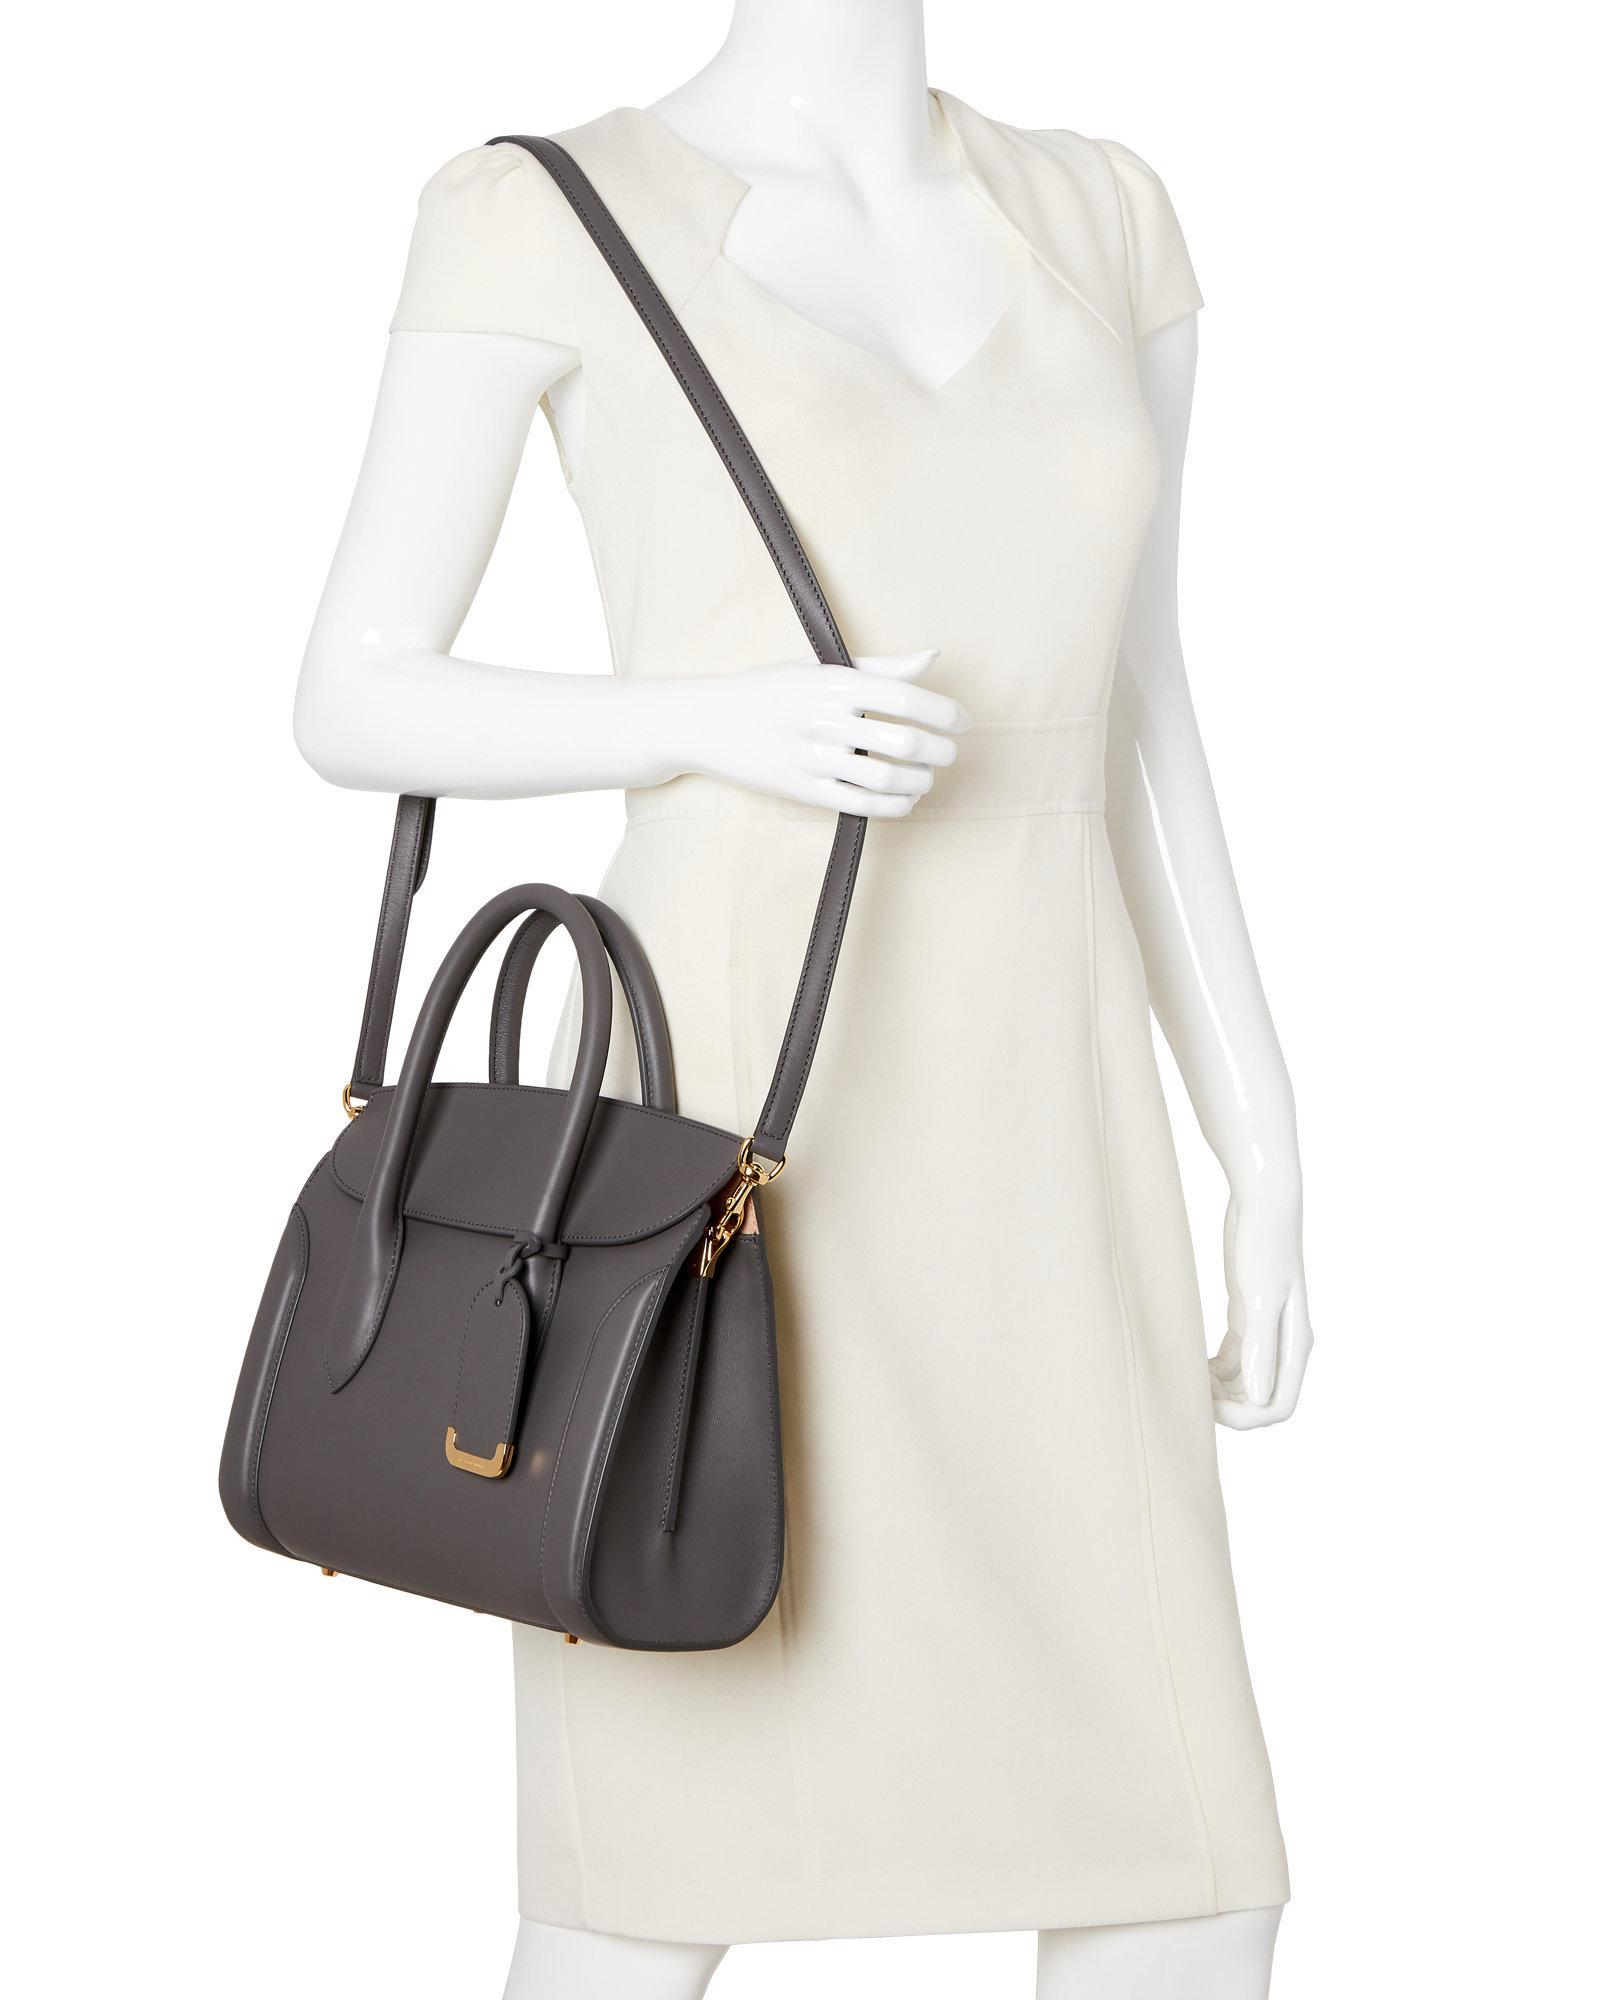 d3d385e8848af Alexander McQueen Graphite Heroine 30 Leather Tote - Lyst